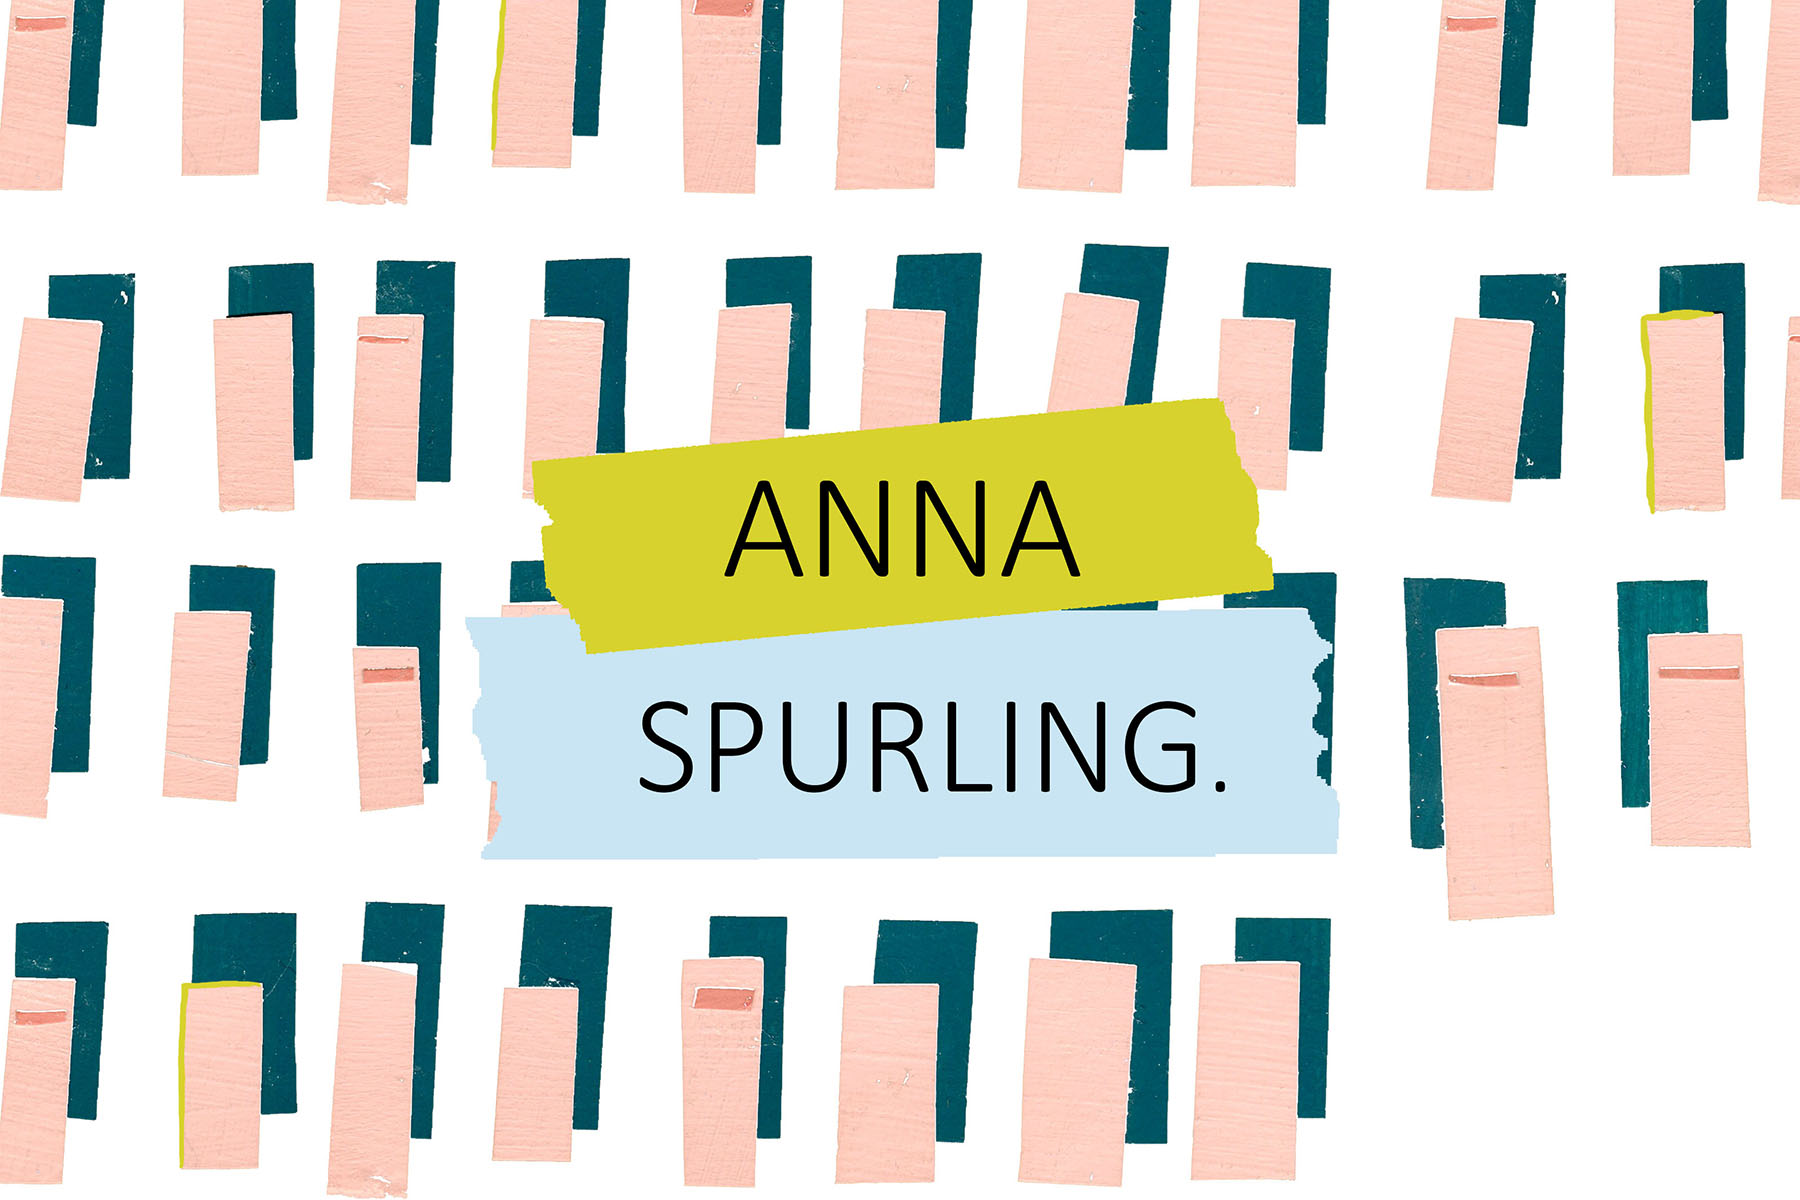 anna-spurling-postcard